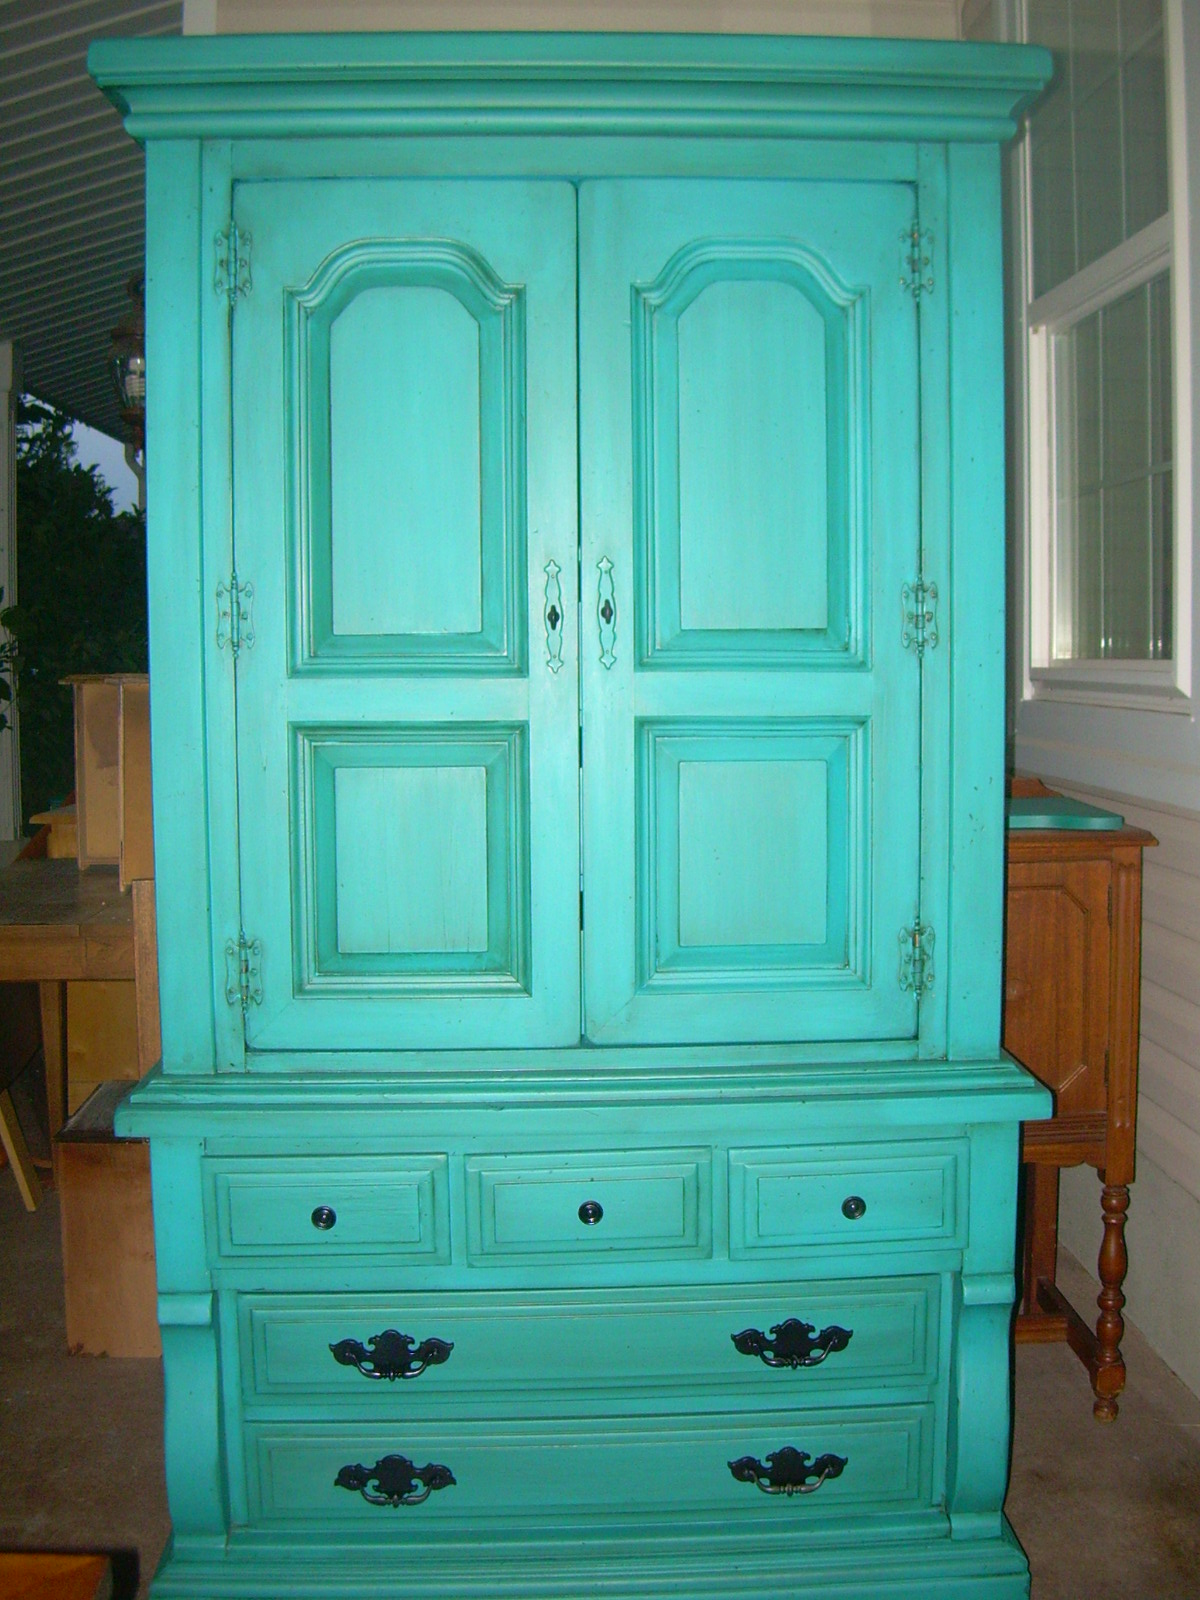 Spray painting wood furniture furniture design ideas Spray paint for wood furniture